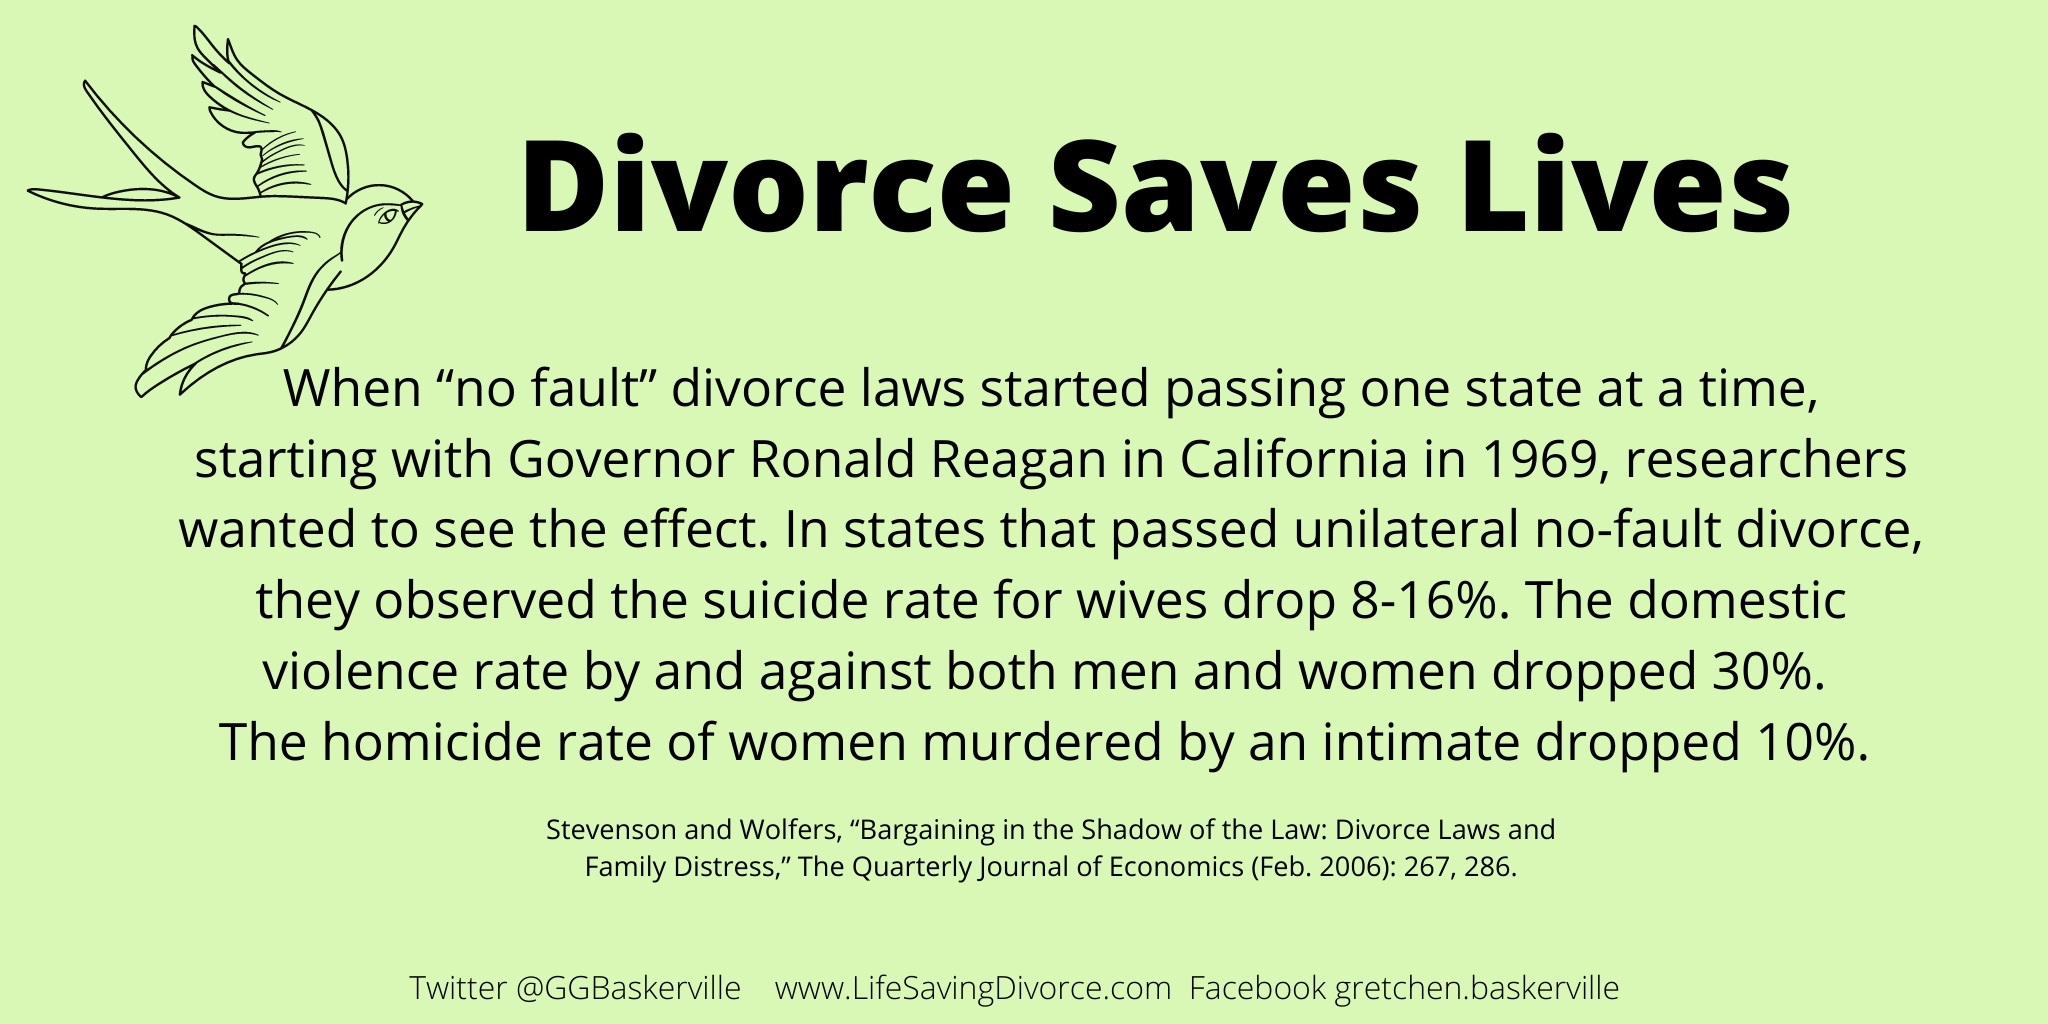 "Divorce Saves Lives. When ""no fault"" divorce laws started passing one state at a time, starting with Governor Ronald Reagan in California in 1969, researchers wanted to see the effect. In states that passed unilateral no-fault divorce, they observed the suicide rate for wives drop 8-16%. The domestic violence rate by and against both men and women dropped 30%.  The homicide rate of women murdered by an intimate dropped 10%.   Stevenson and Wolfers, ""Bargaining in the Shadow of the Law: Divorce Laws and Family Distress,"" The Quarterly Journal of Economics (Feb. 2006): 267, 286."